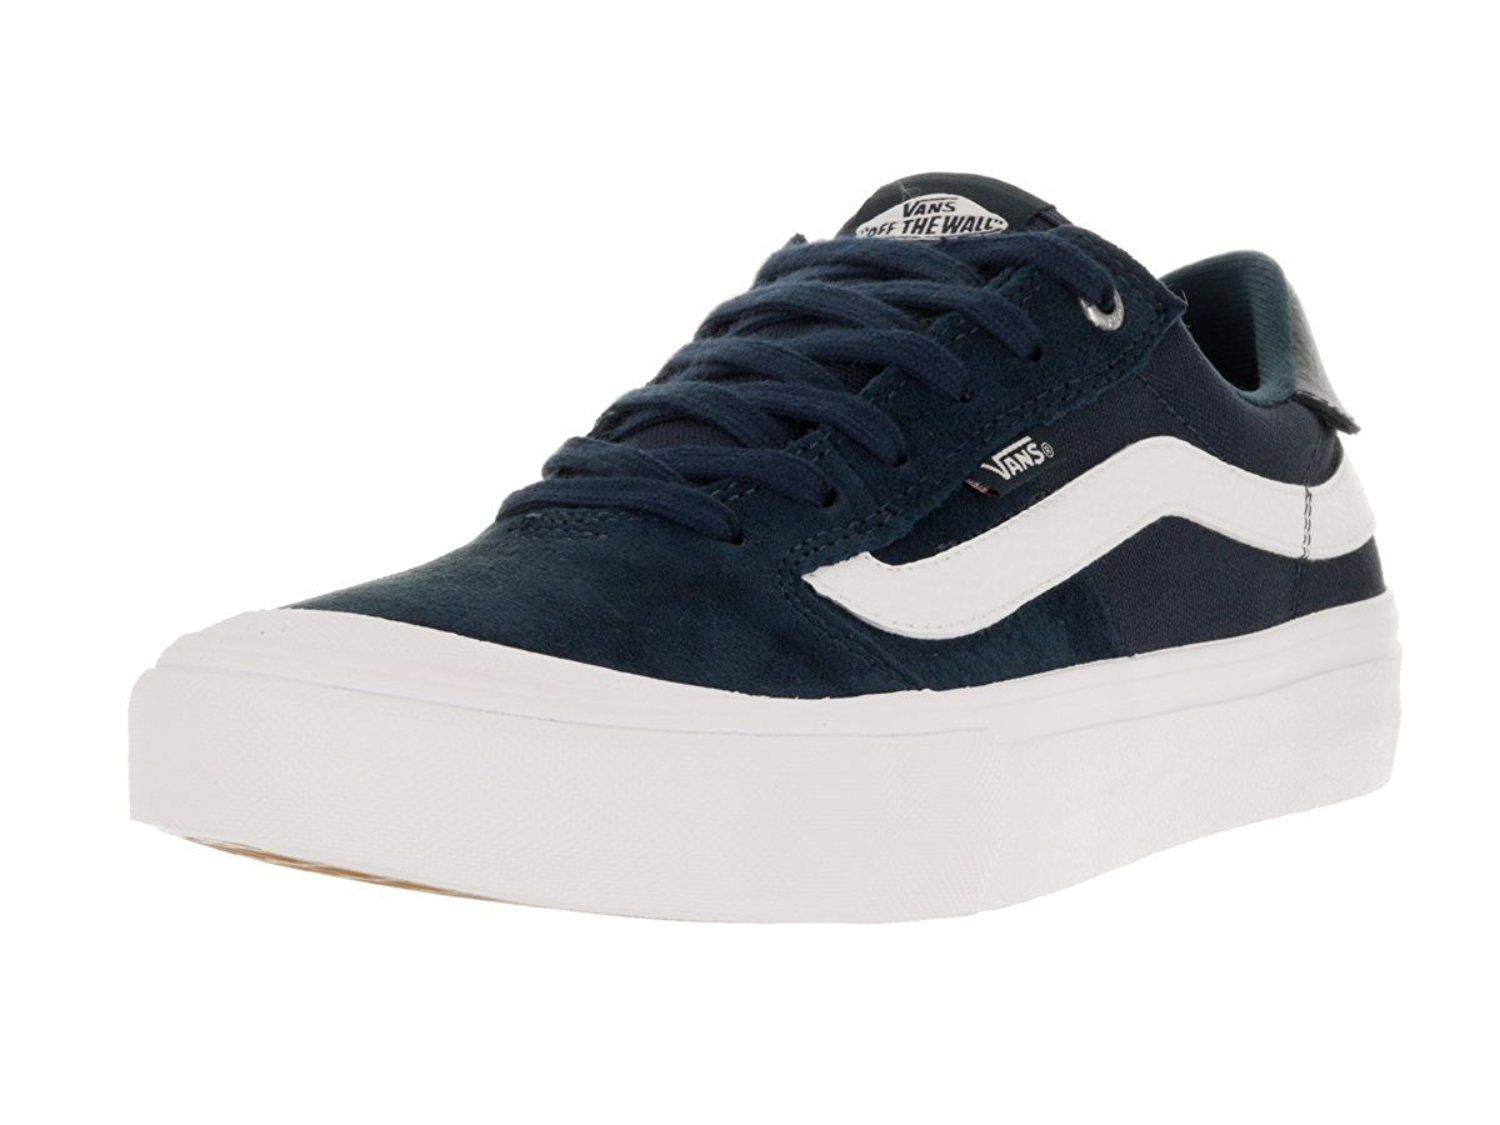 Vans Men's Style 112 Pro Midn Skate Shoe * Don't get left